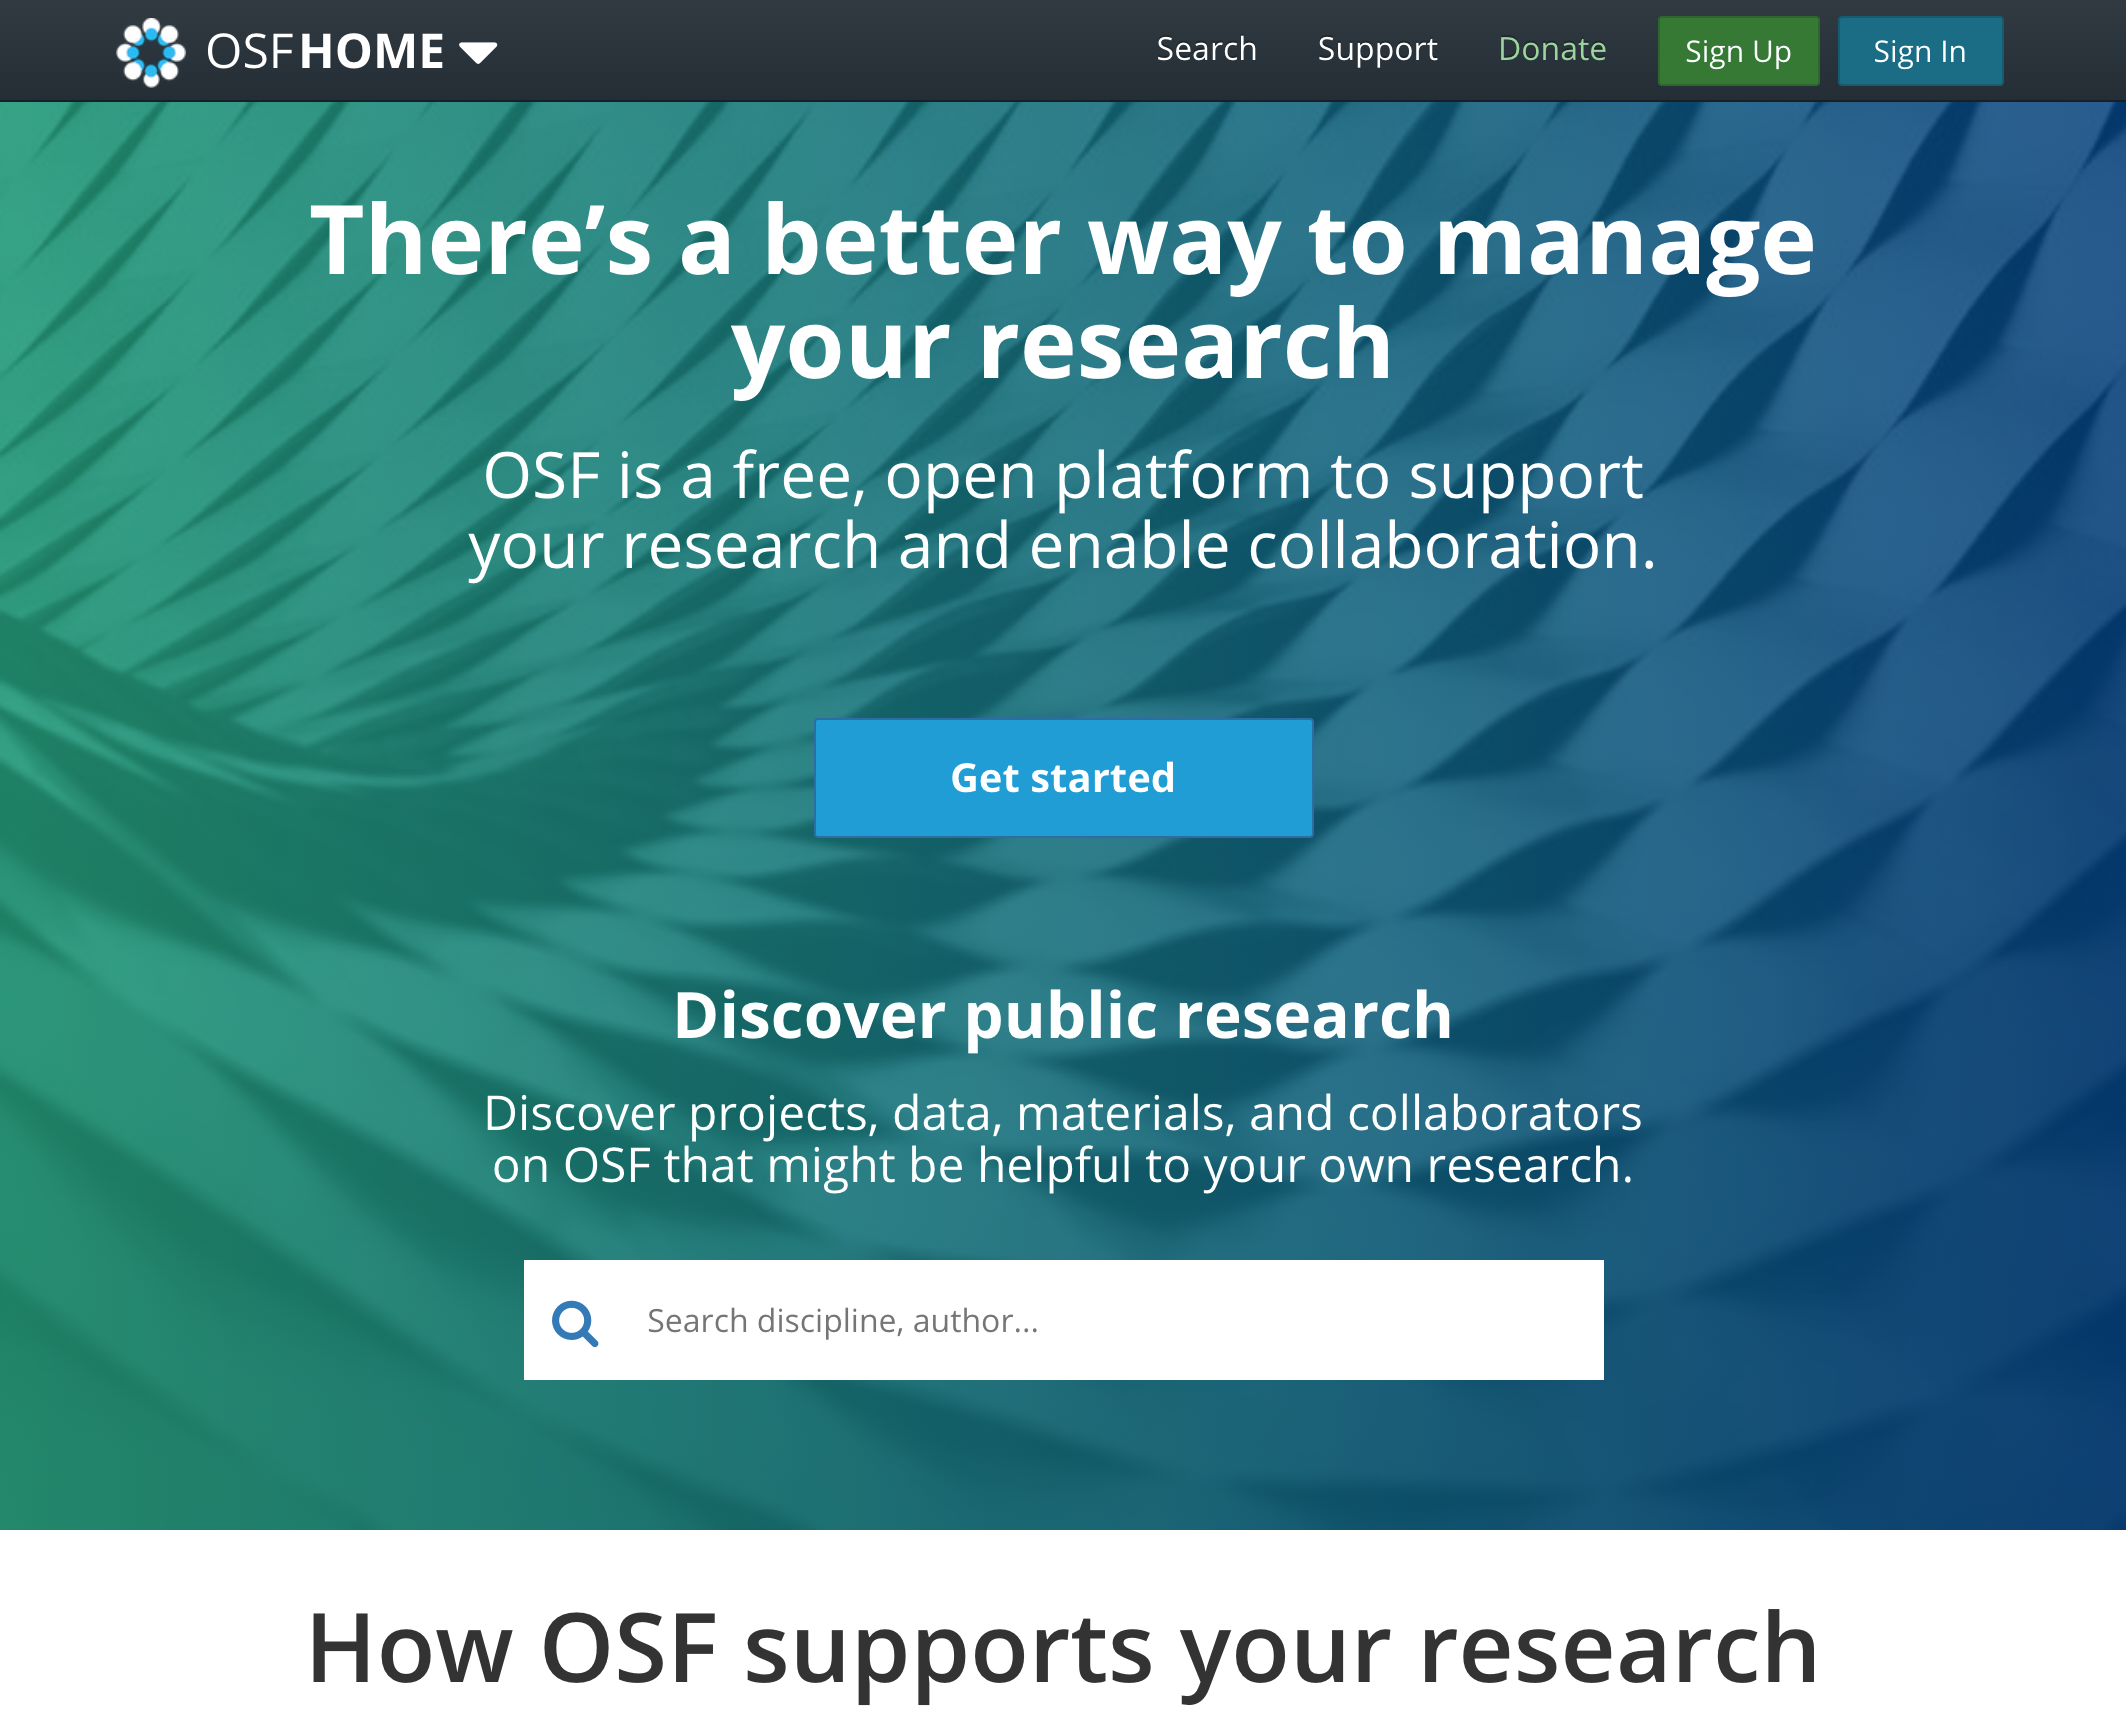 OSF: Open Science Framework